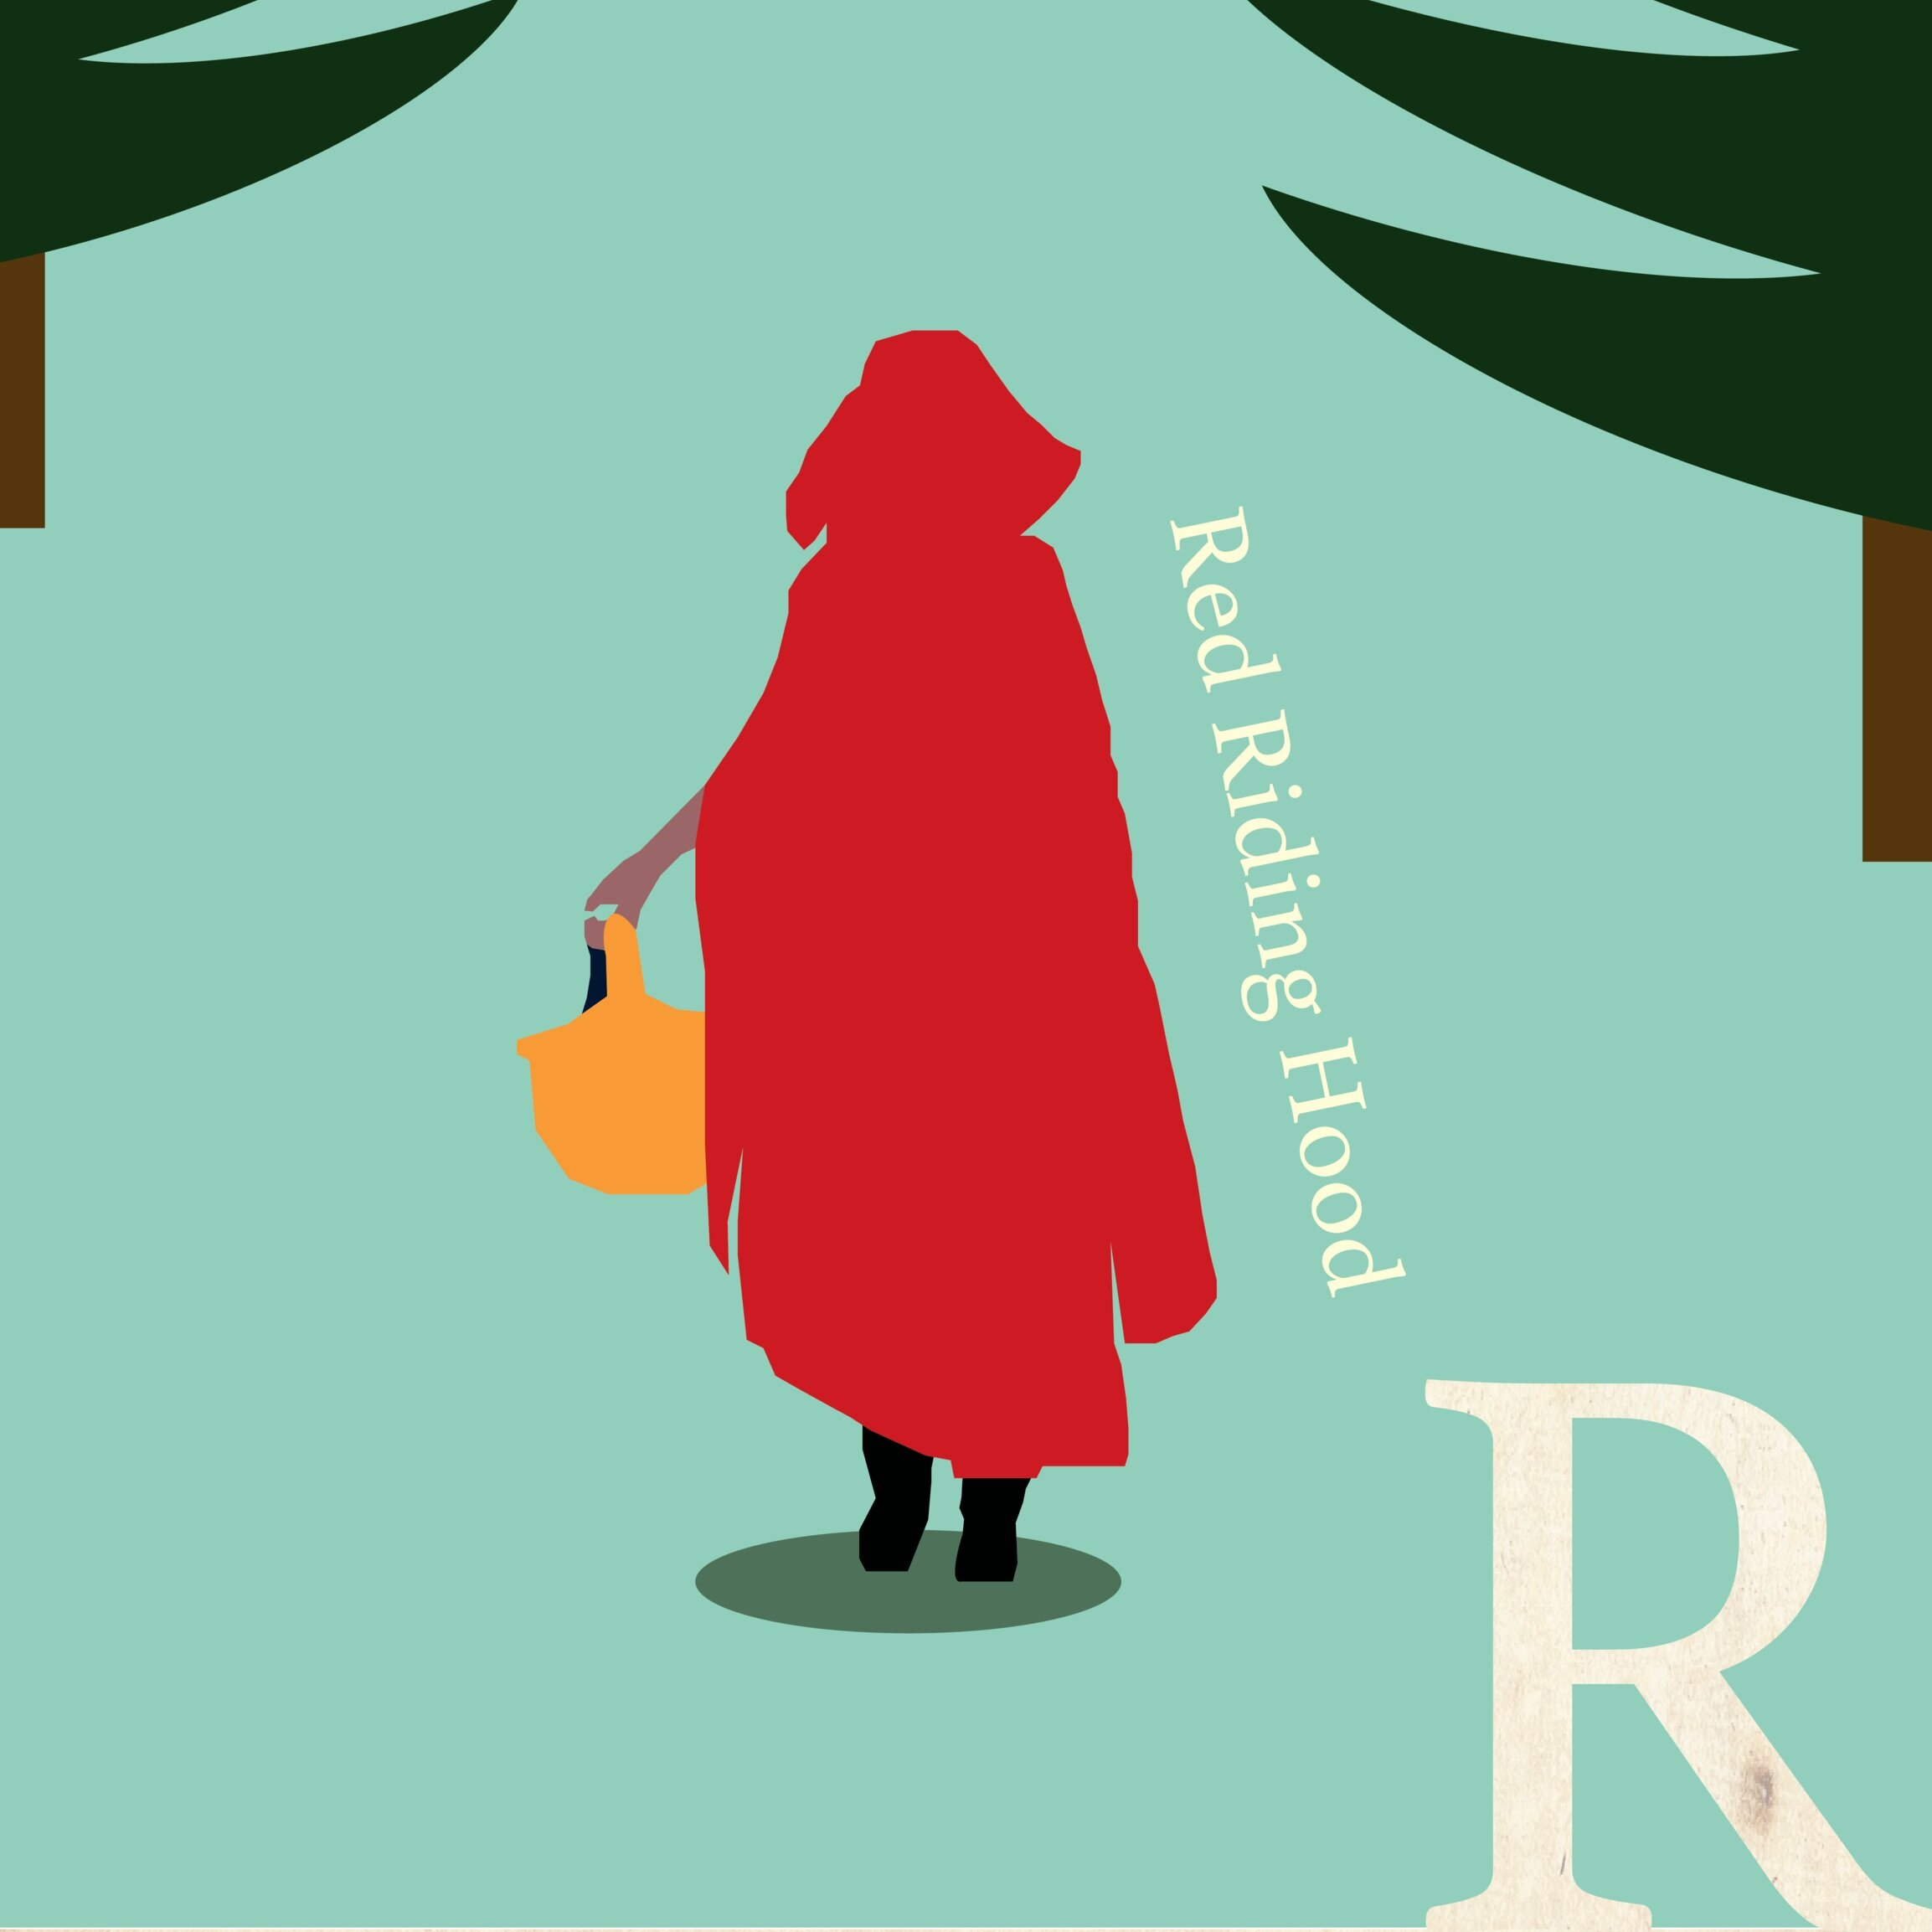 R-Red_Riding_Hood-01.png